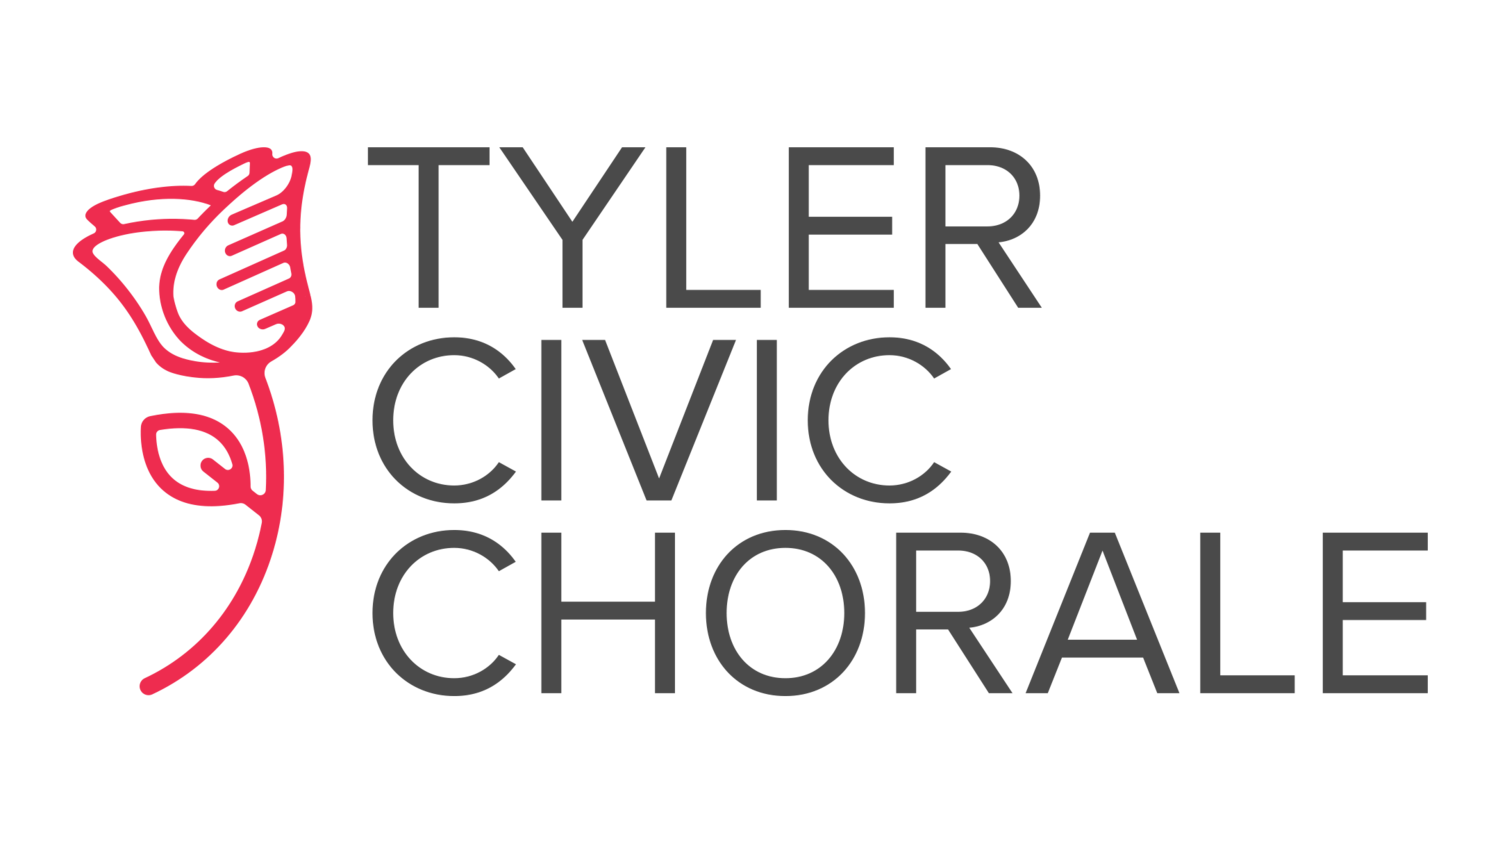 Tyler Civic Chorale